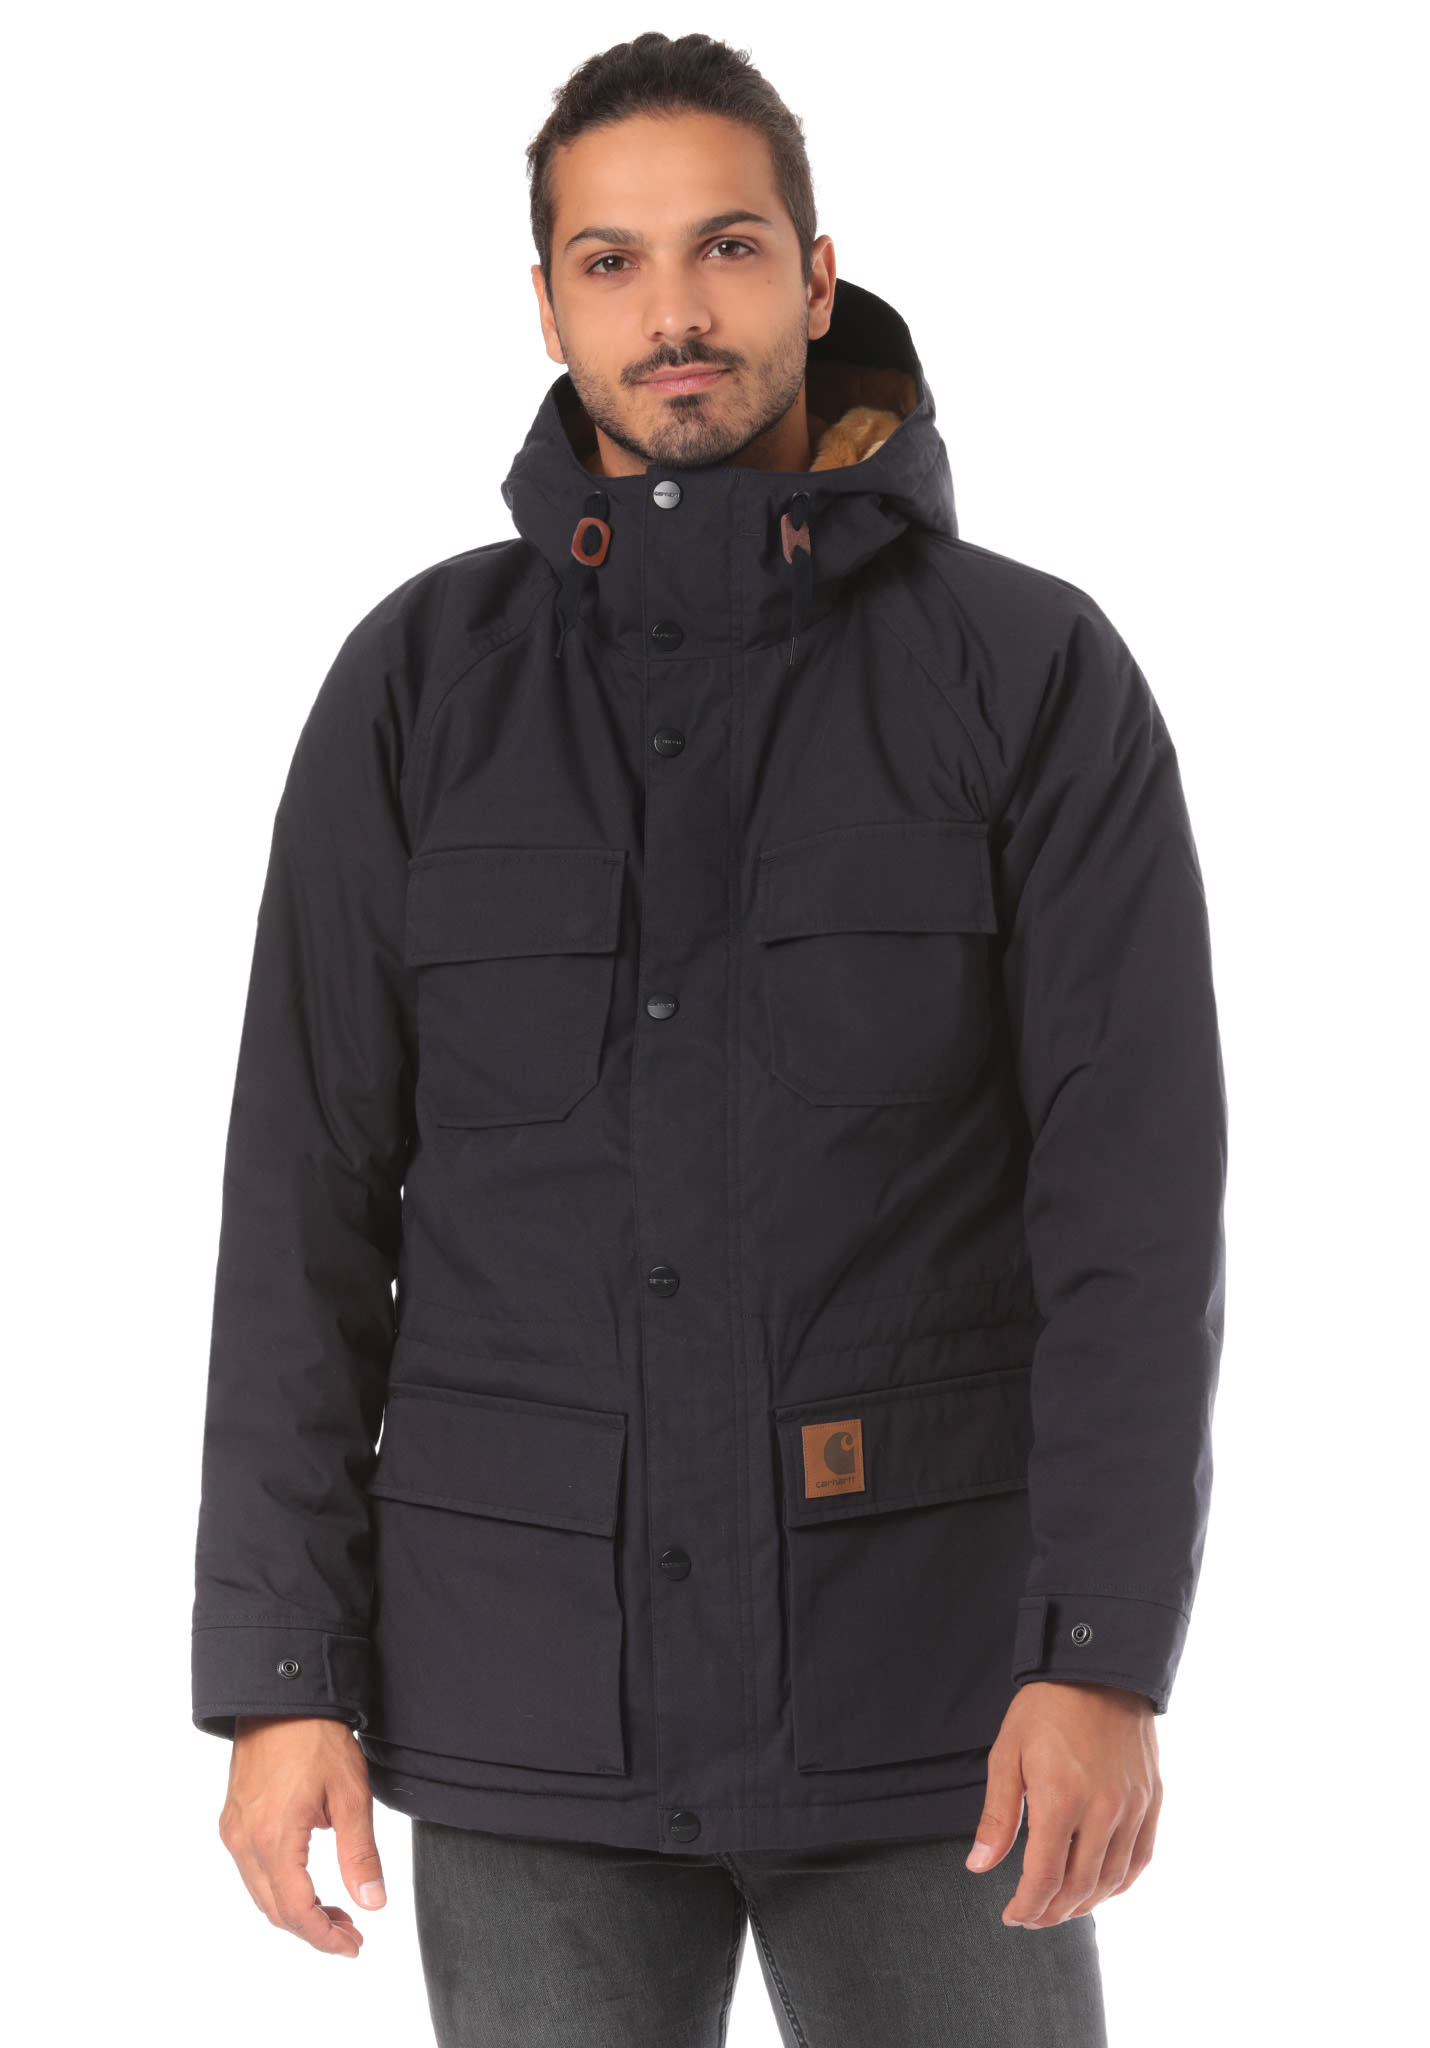 a717572a4 carhartt WIP Mentley - Jacket for Men - Blue